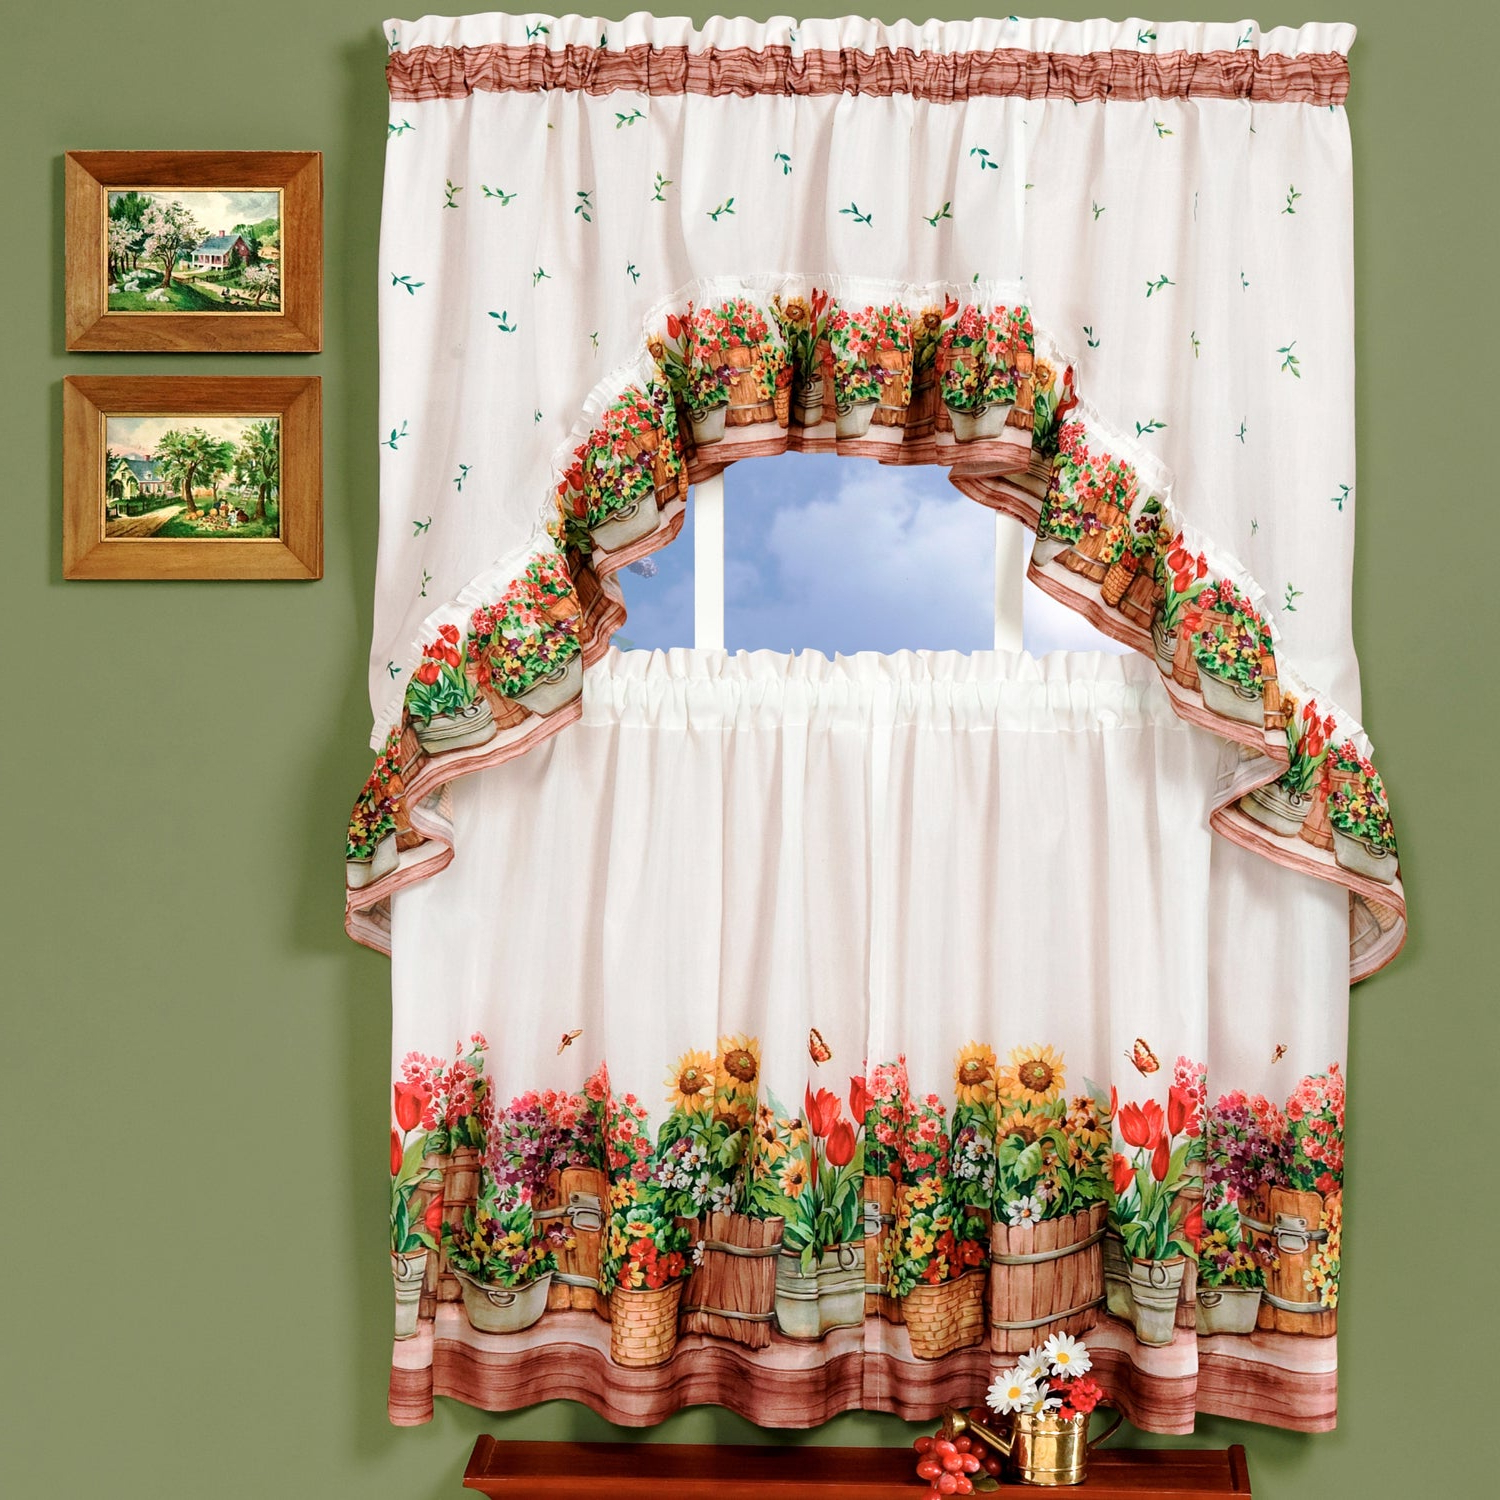 Traditional Two Piece Tailored Tier And Swag Window Curtains Set With Ornate Flower Garden Print – 36 Inch Pertaining To Well Known Traditional Two Piece Tailored Tier And Swag Window Curtains Sets With Ornate Rooster Print (View 14 of 20)